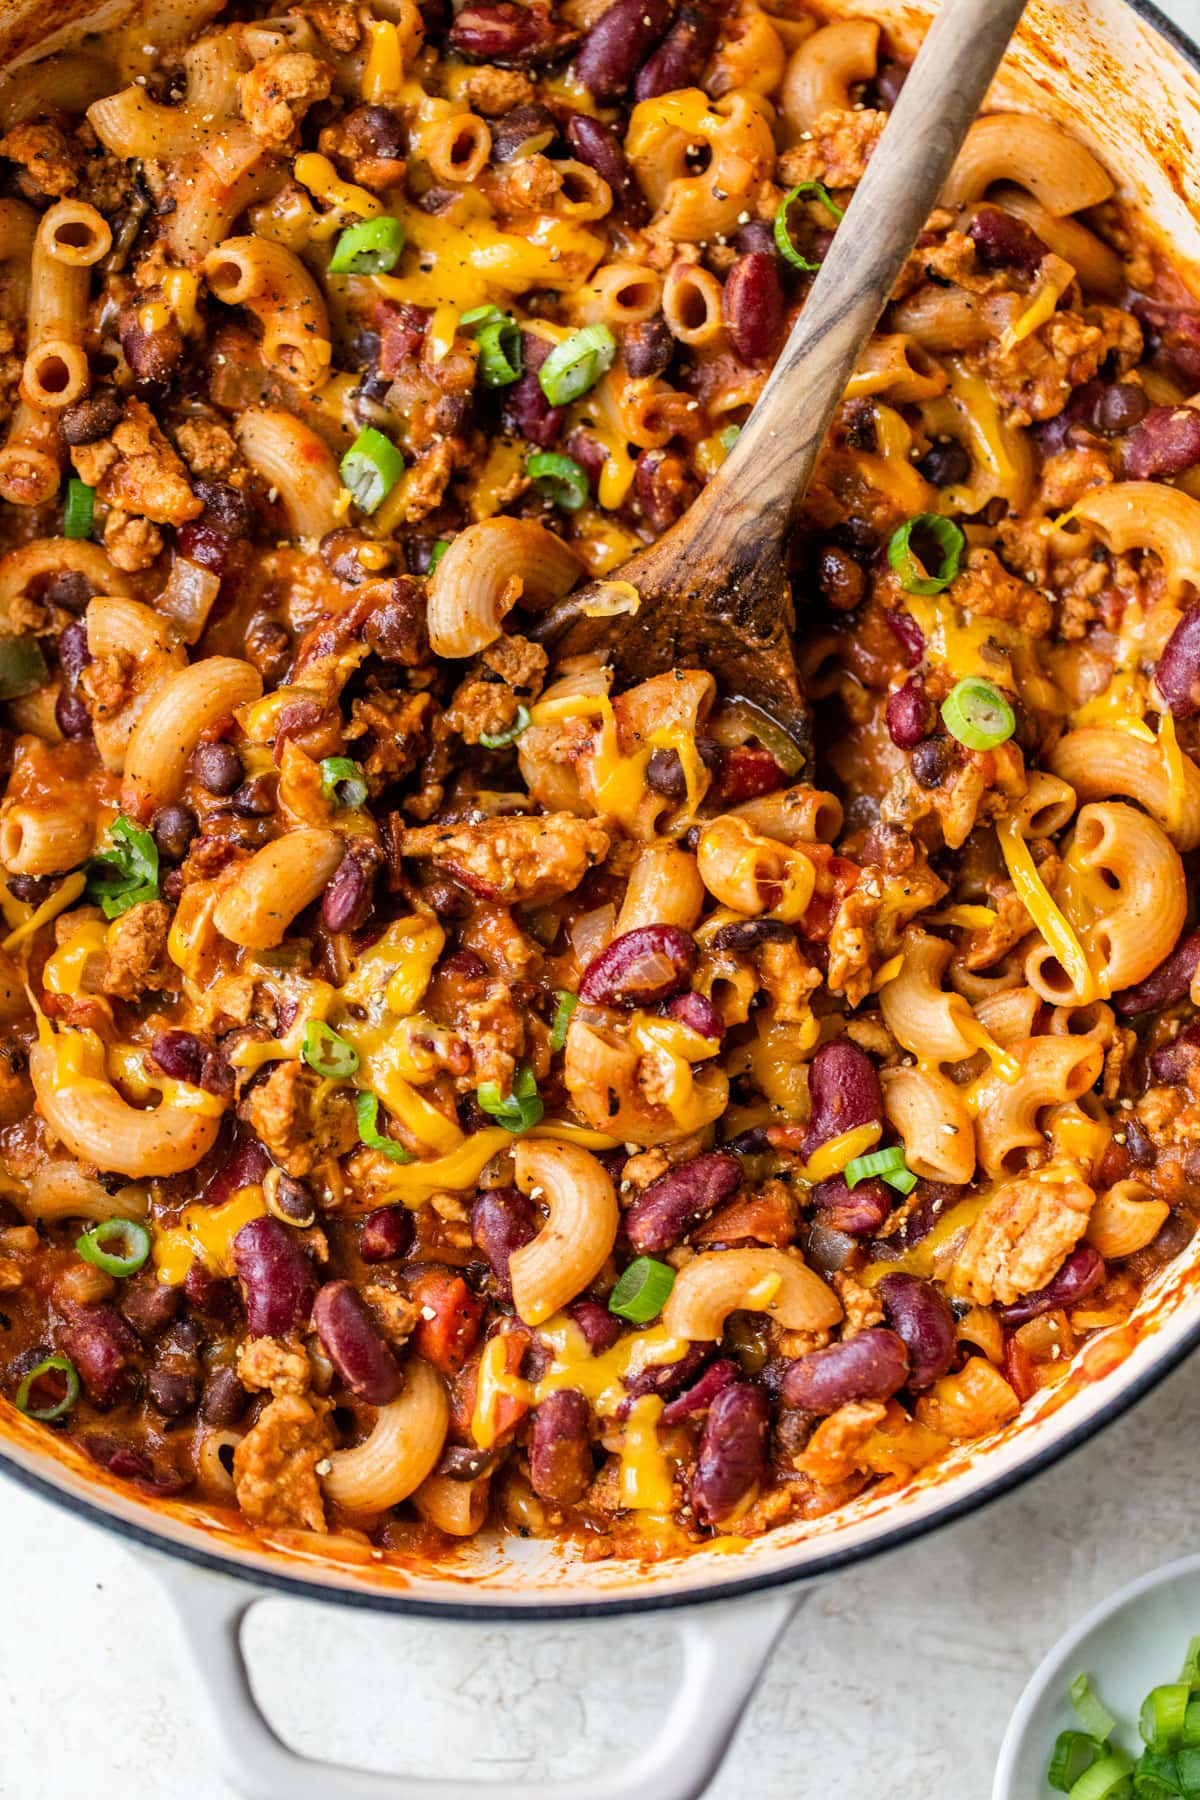 Easy One Pot Chili Mac and Cheese. An easy, healthy recipe that's perfect busy weeknights!